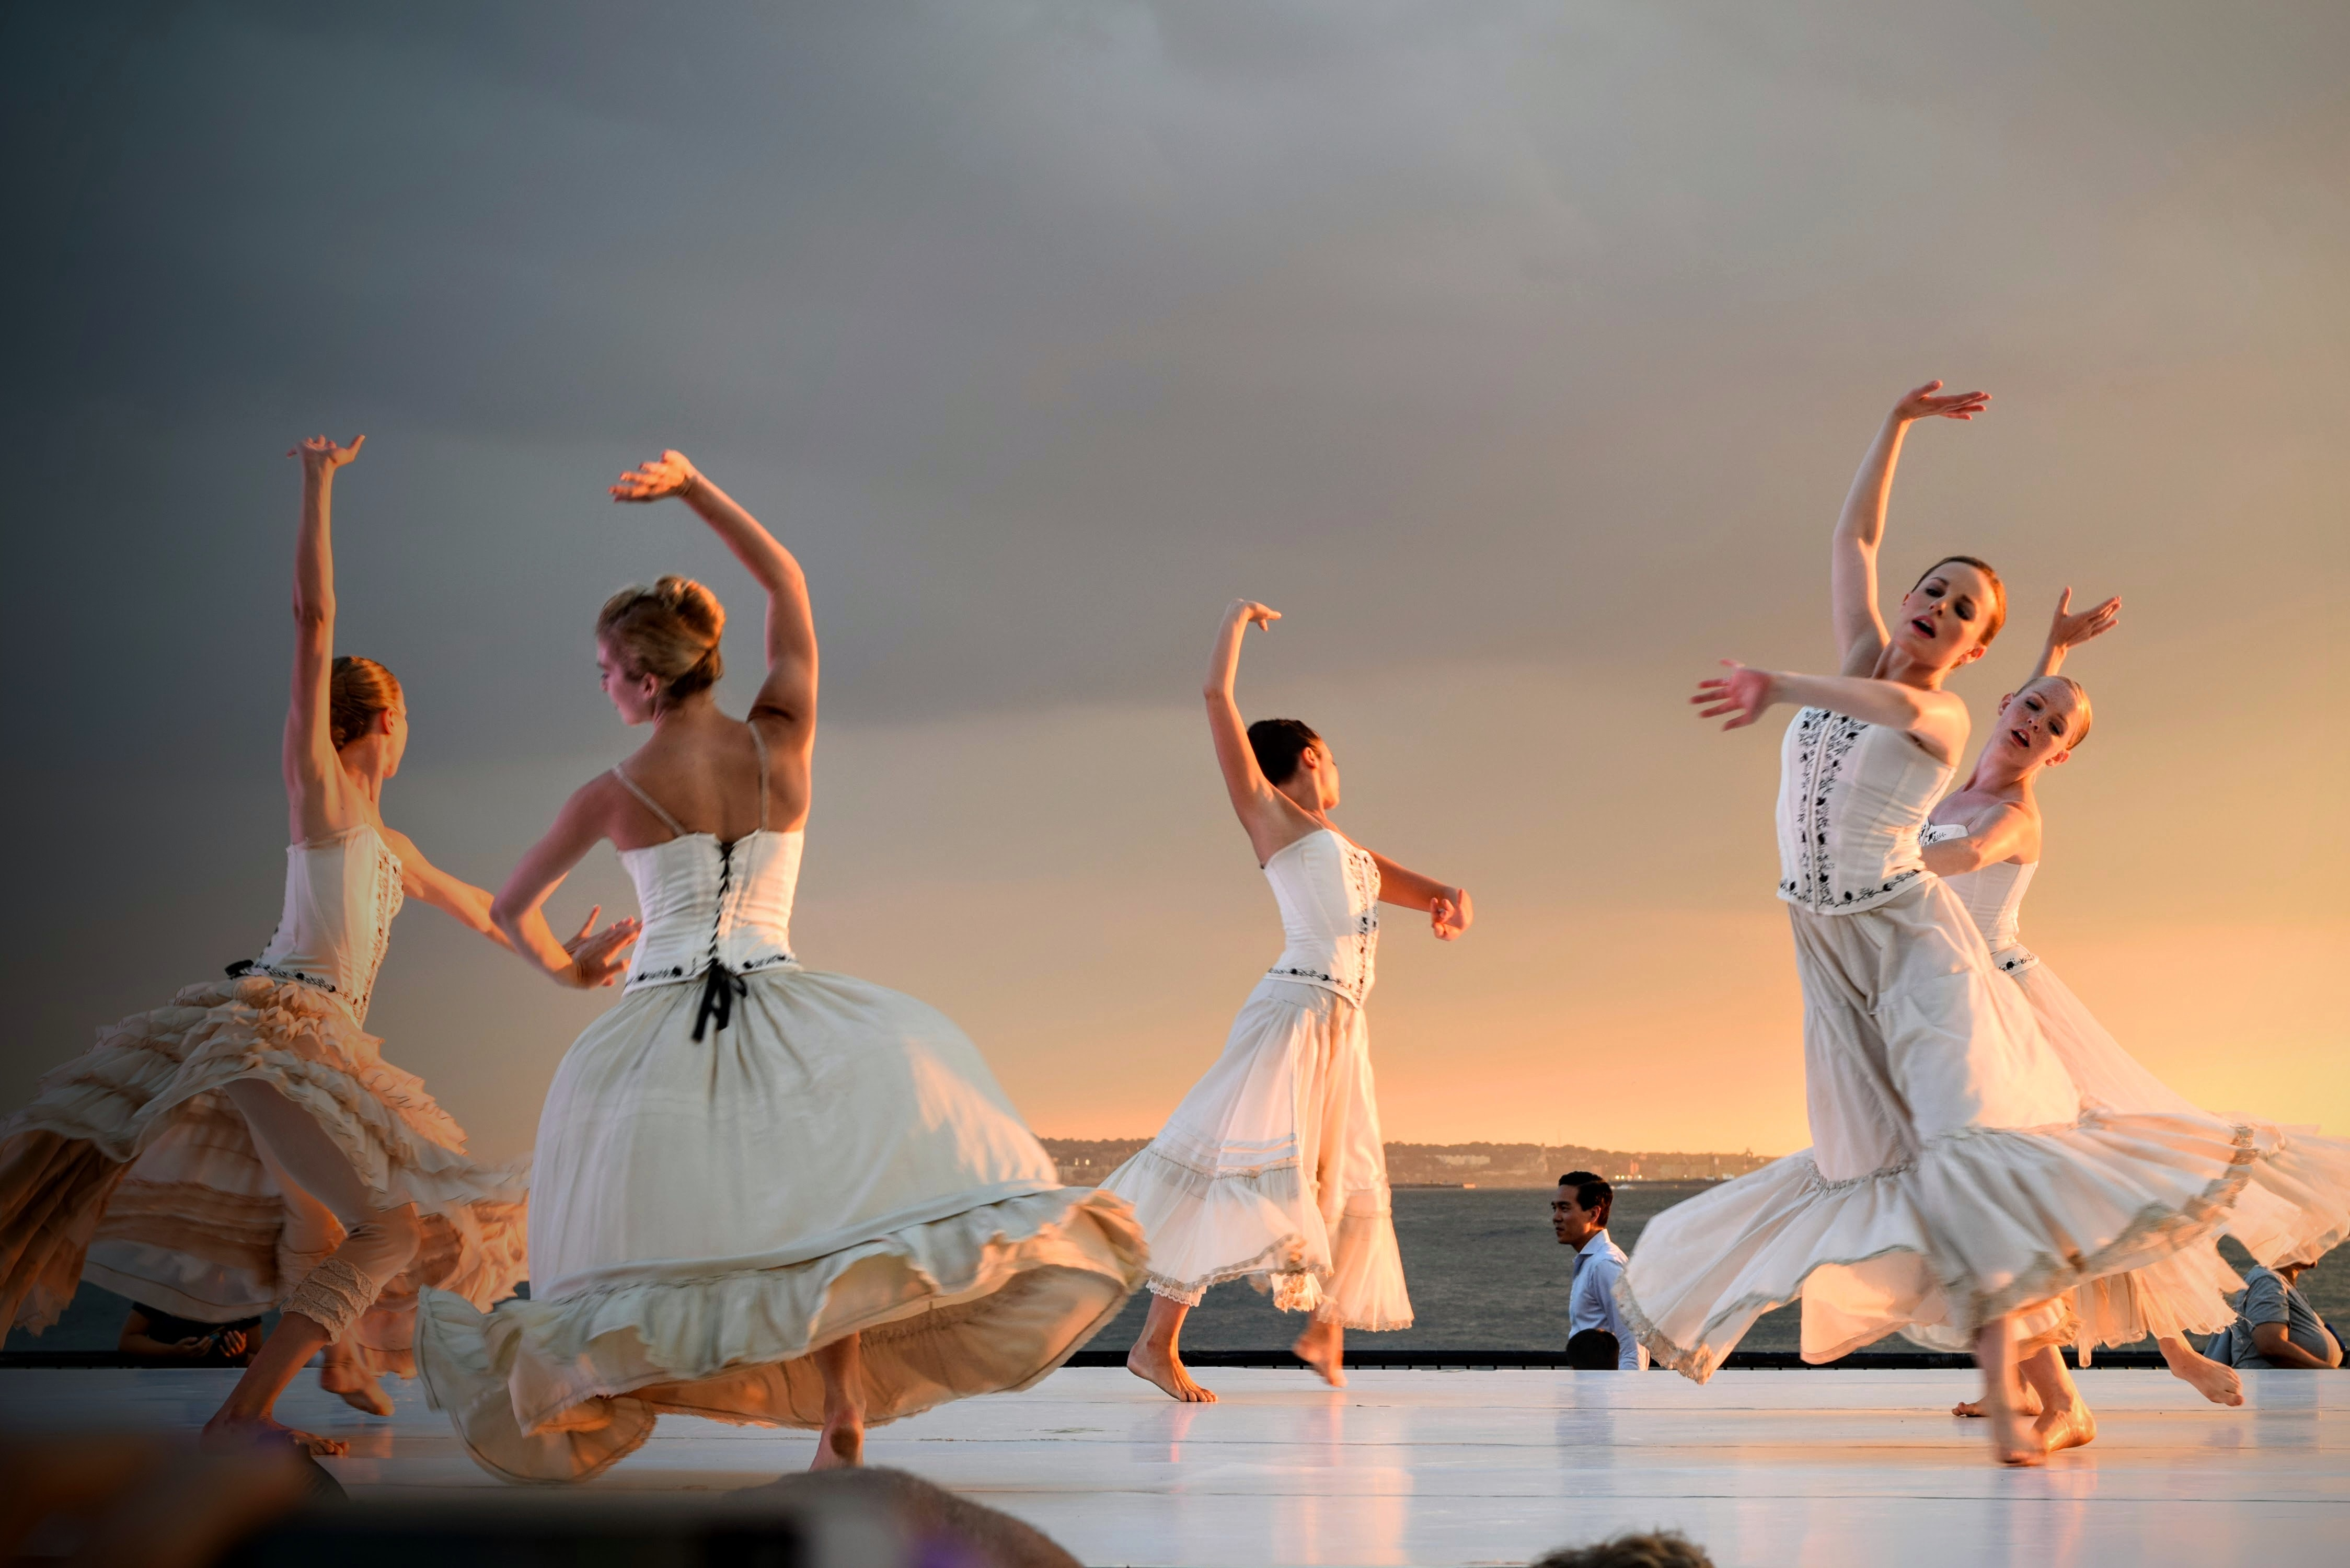 5 women in white dress dancing under gray sky during sunset photo